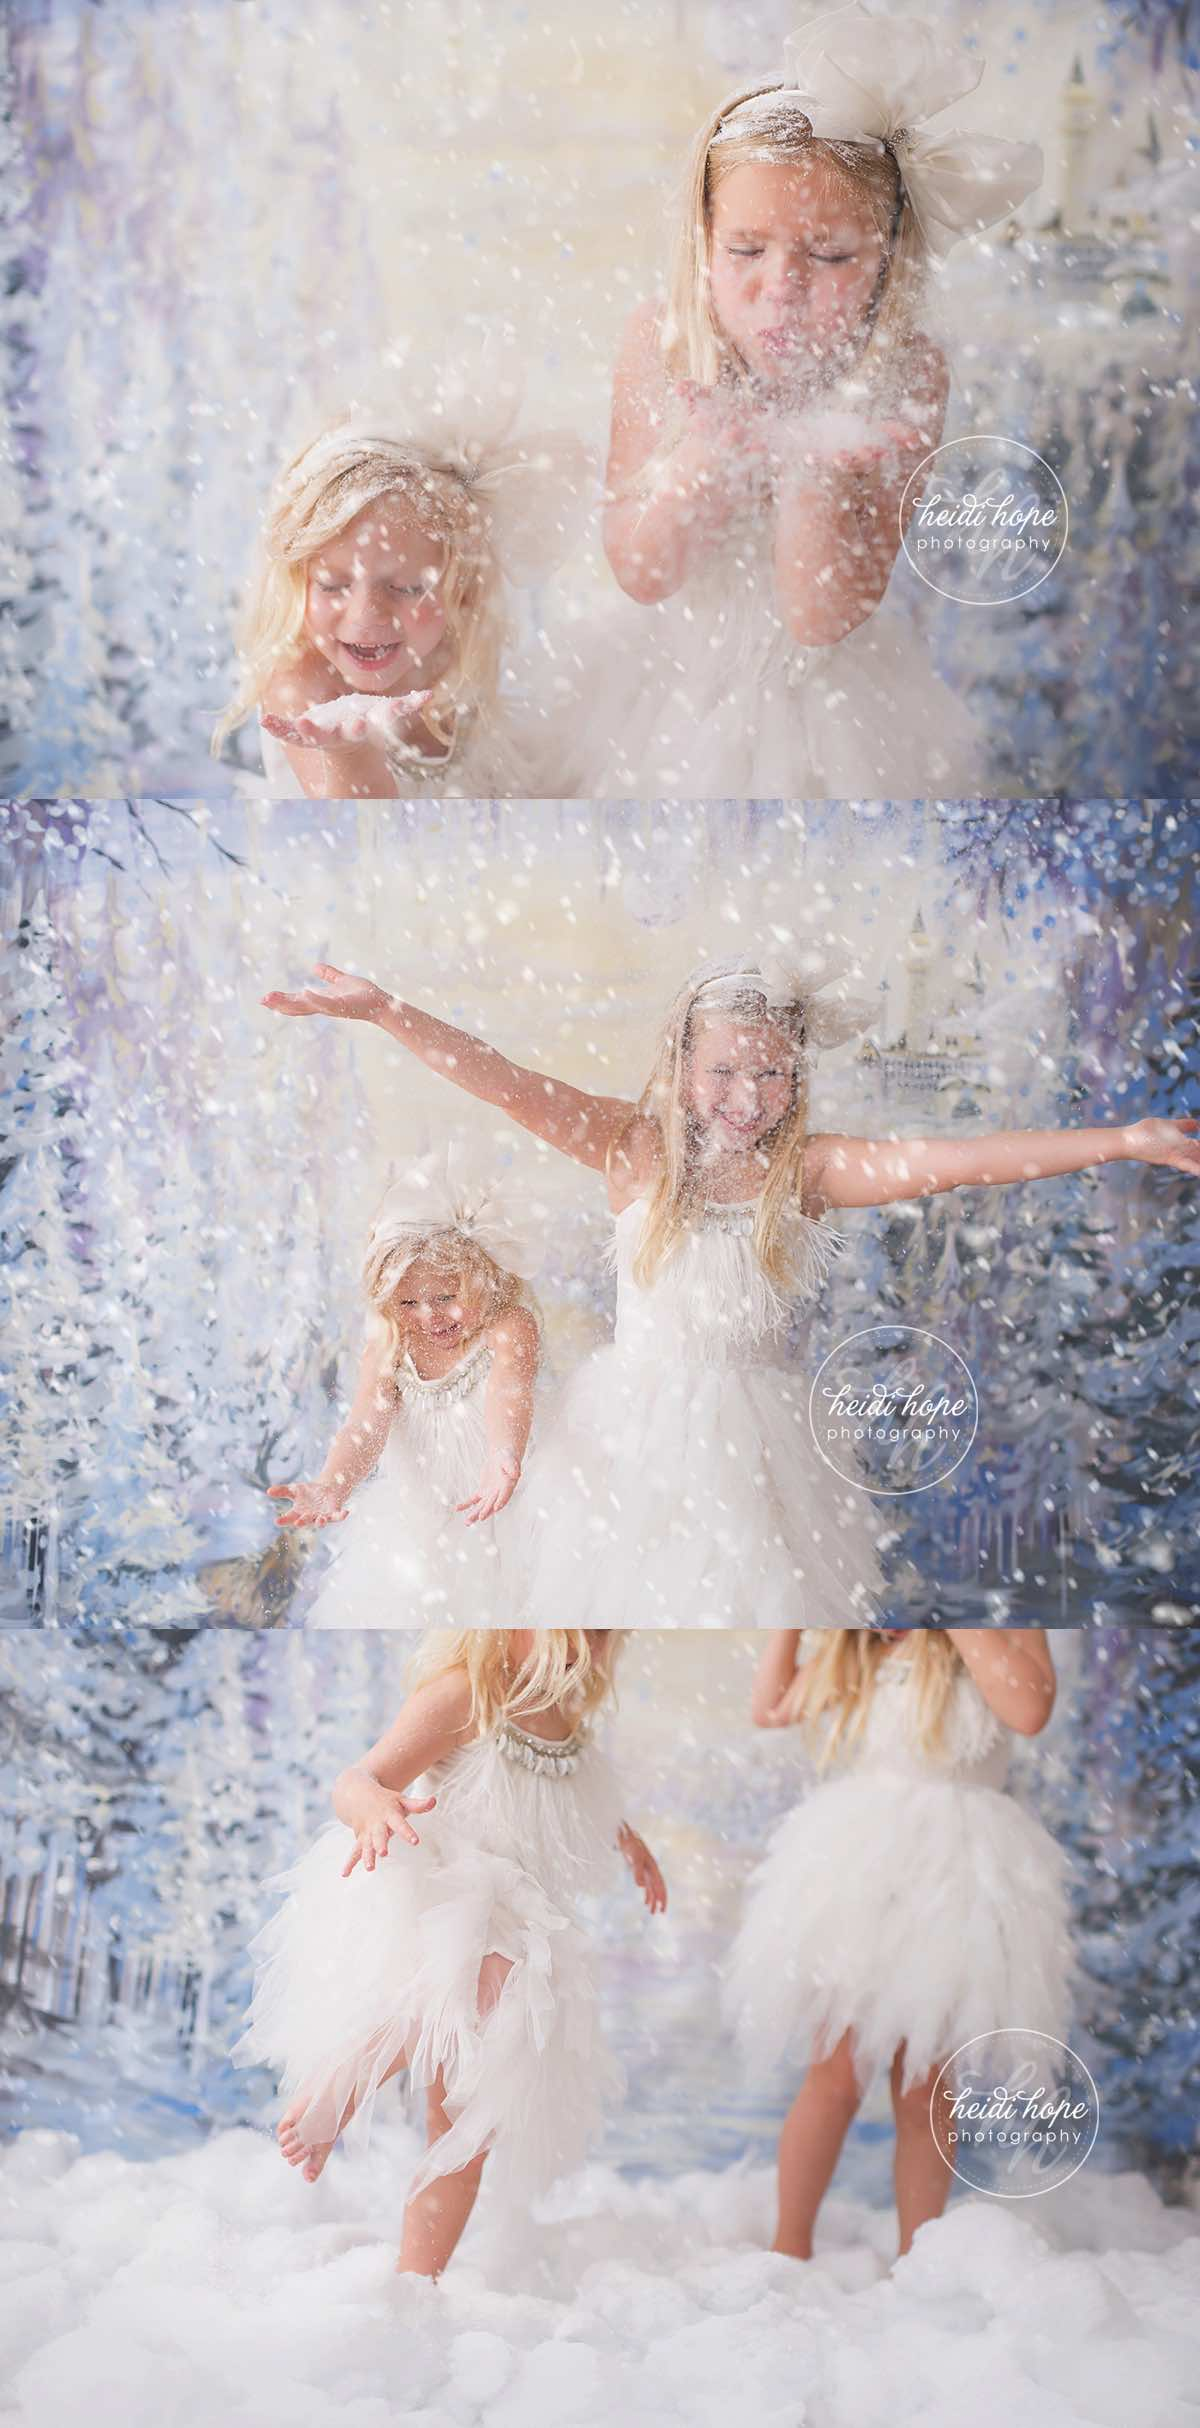 heidi hope backdrop frozen winter wonderland mini session with tutudumonde and snow 6